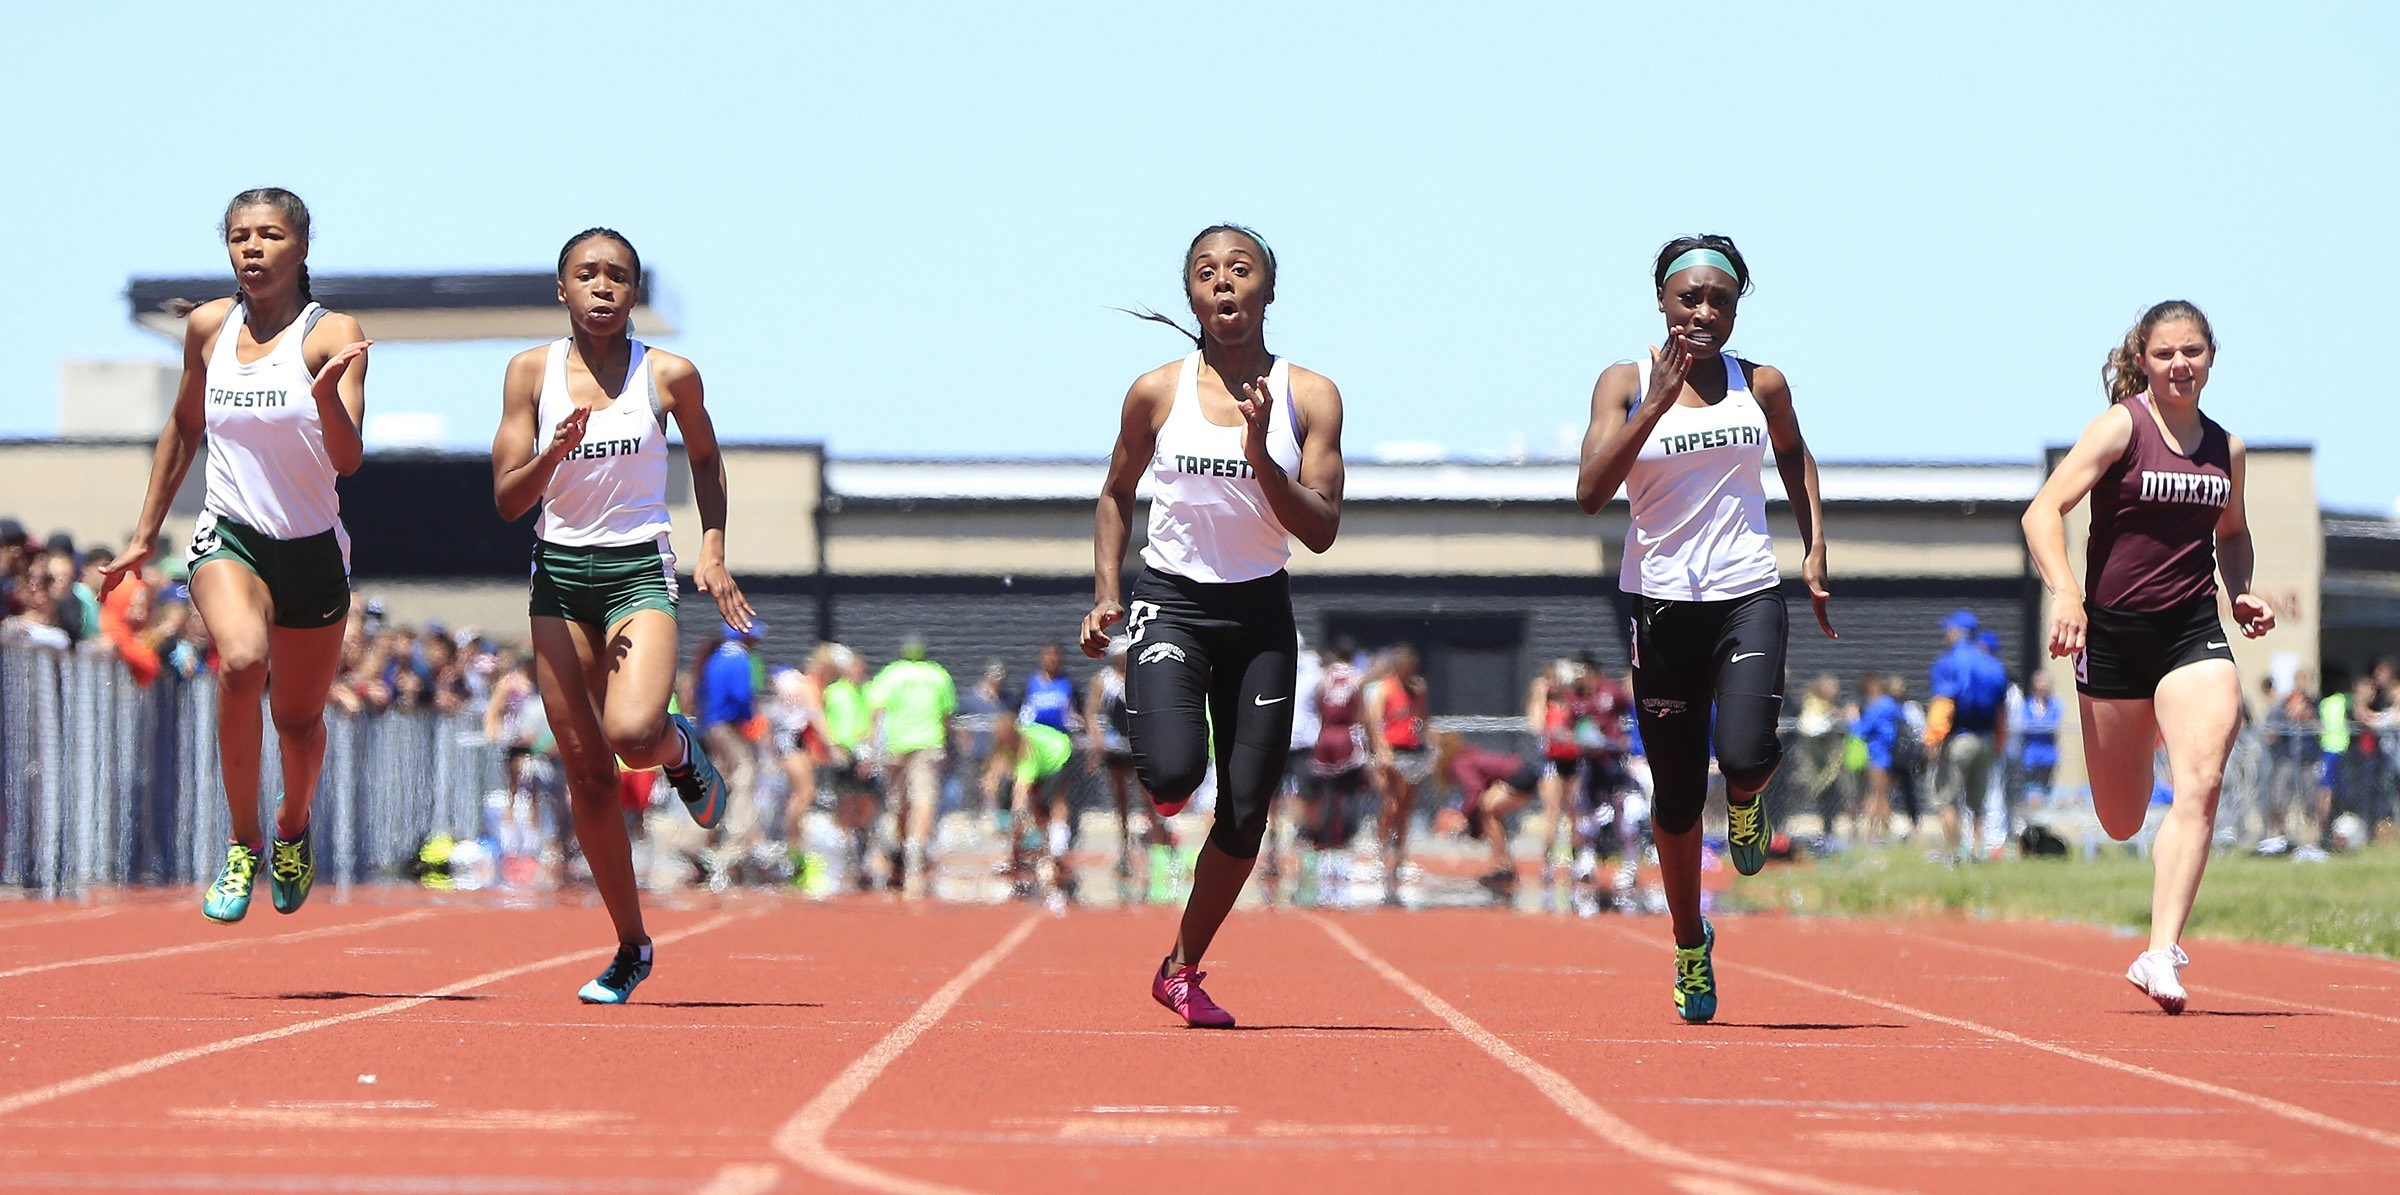 Taylor Alston, second from the right, leads the Tapestry charge to the finish line in the Division II 100-meter dash during the Section VI track and field championships at Niagara-Wheatfield.